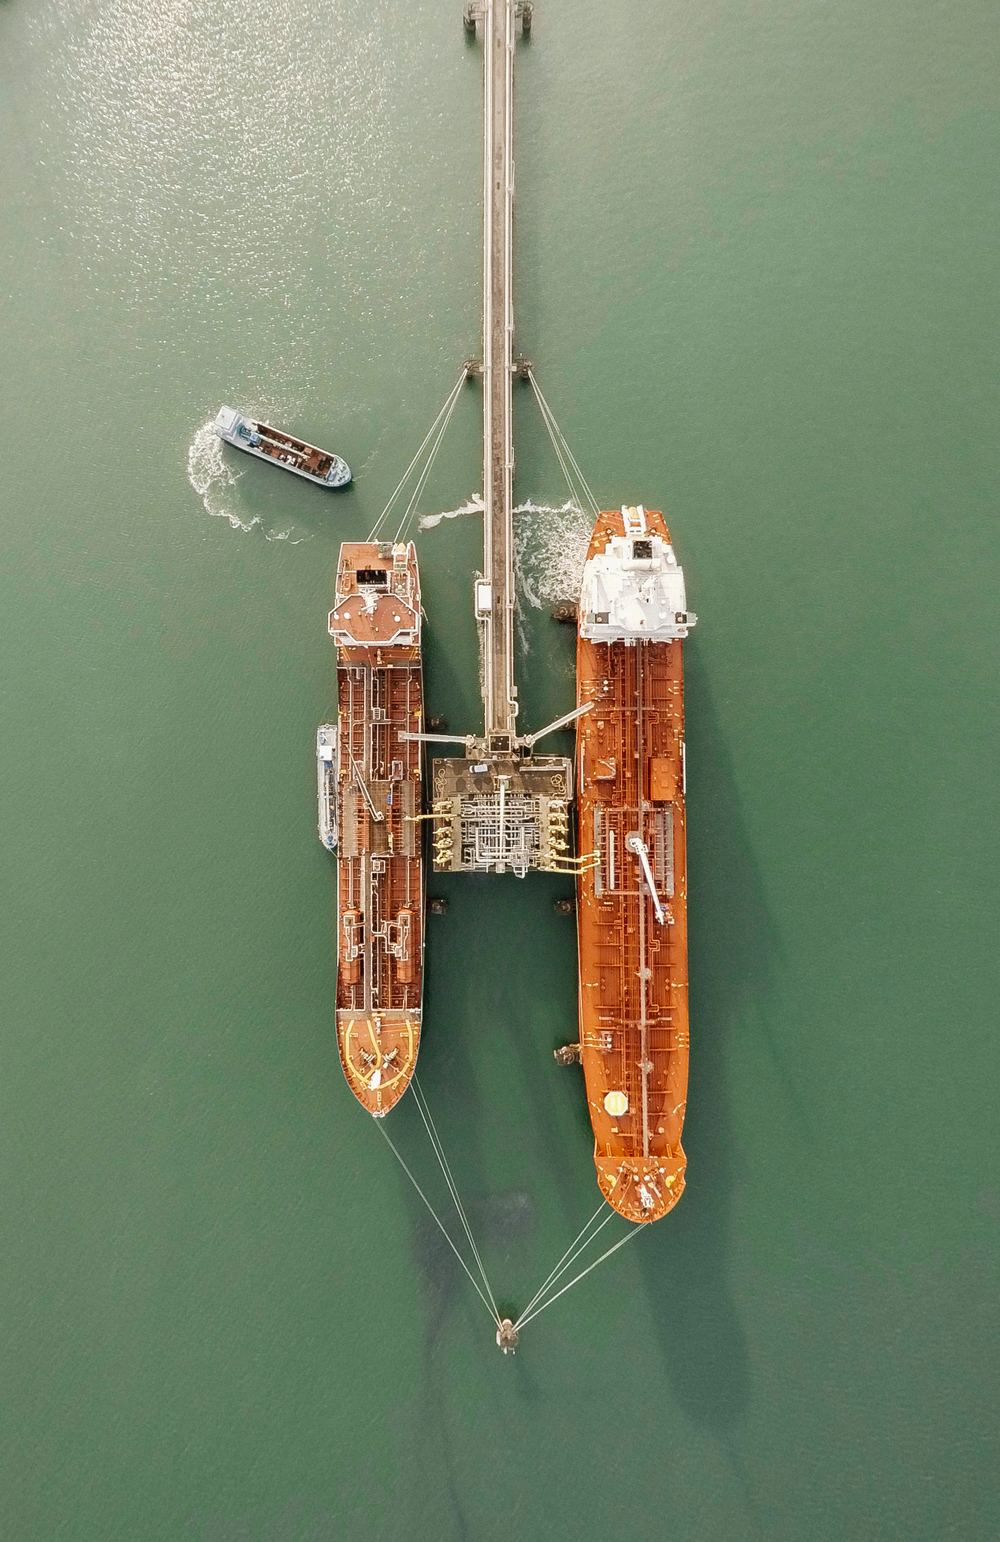 Check out this incredible shot of tankers tied up at the Port of Rotterdam in Holland. From 1962 until 2002, Rotterdam was the world's busiest port, but was overtaken first by Singapore and later by Shanghai. This photo was captured via drone and shared with us by our friend @digitalanthill